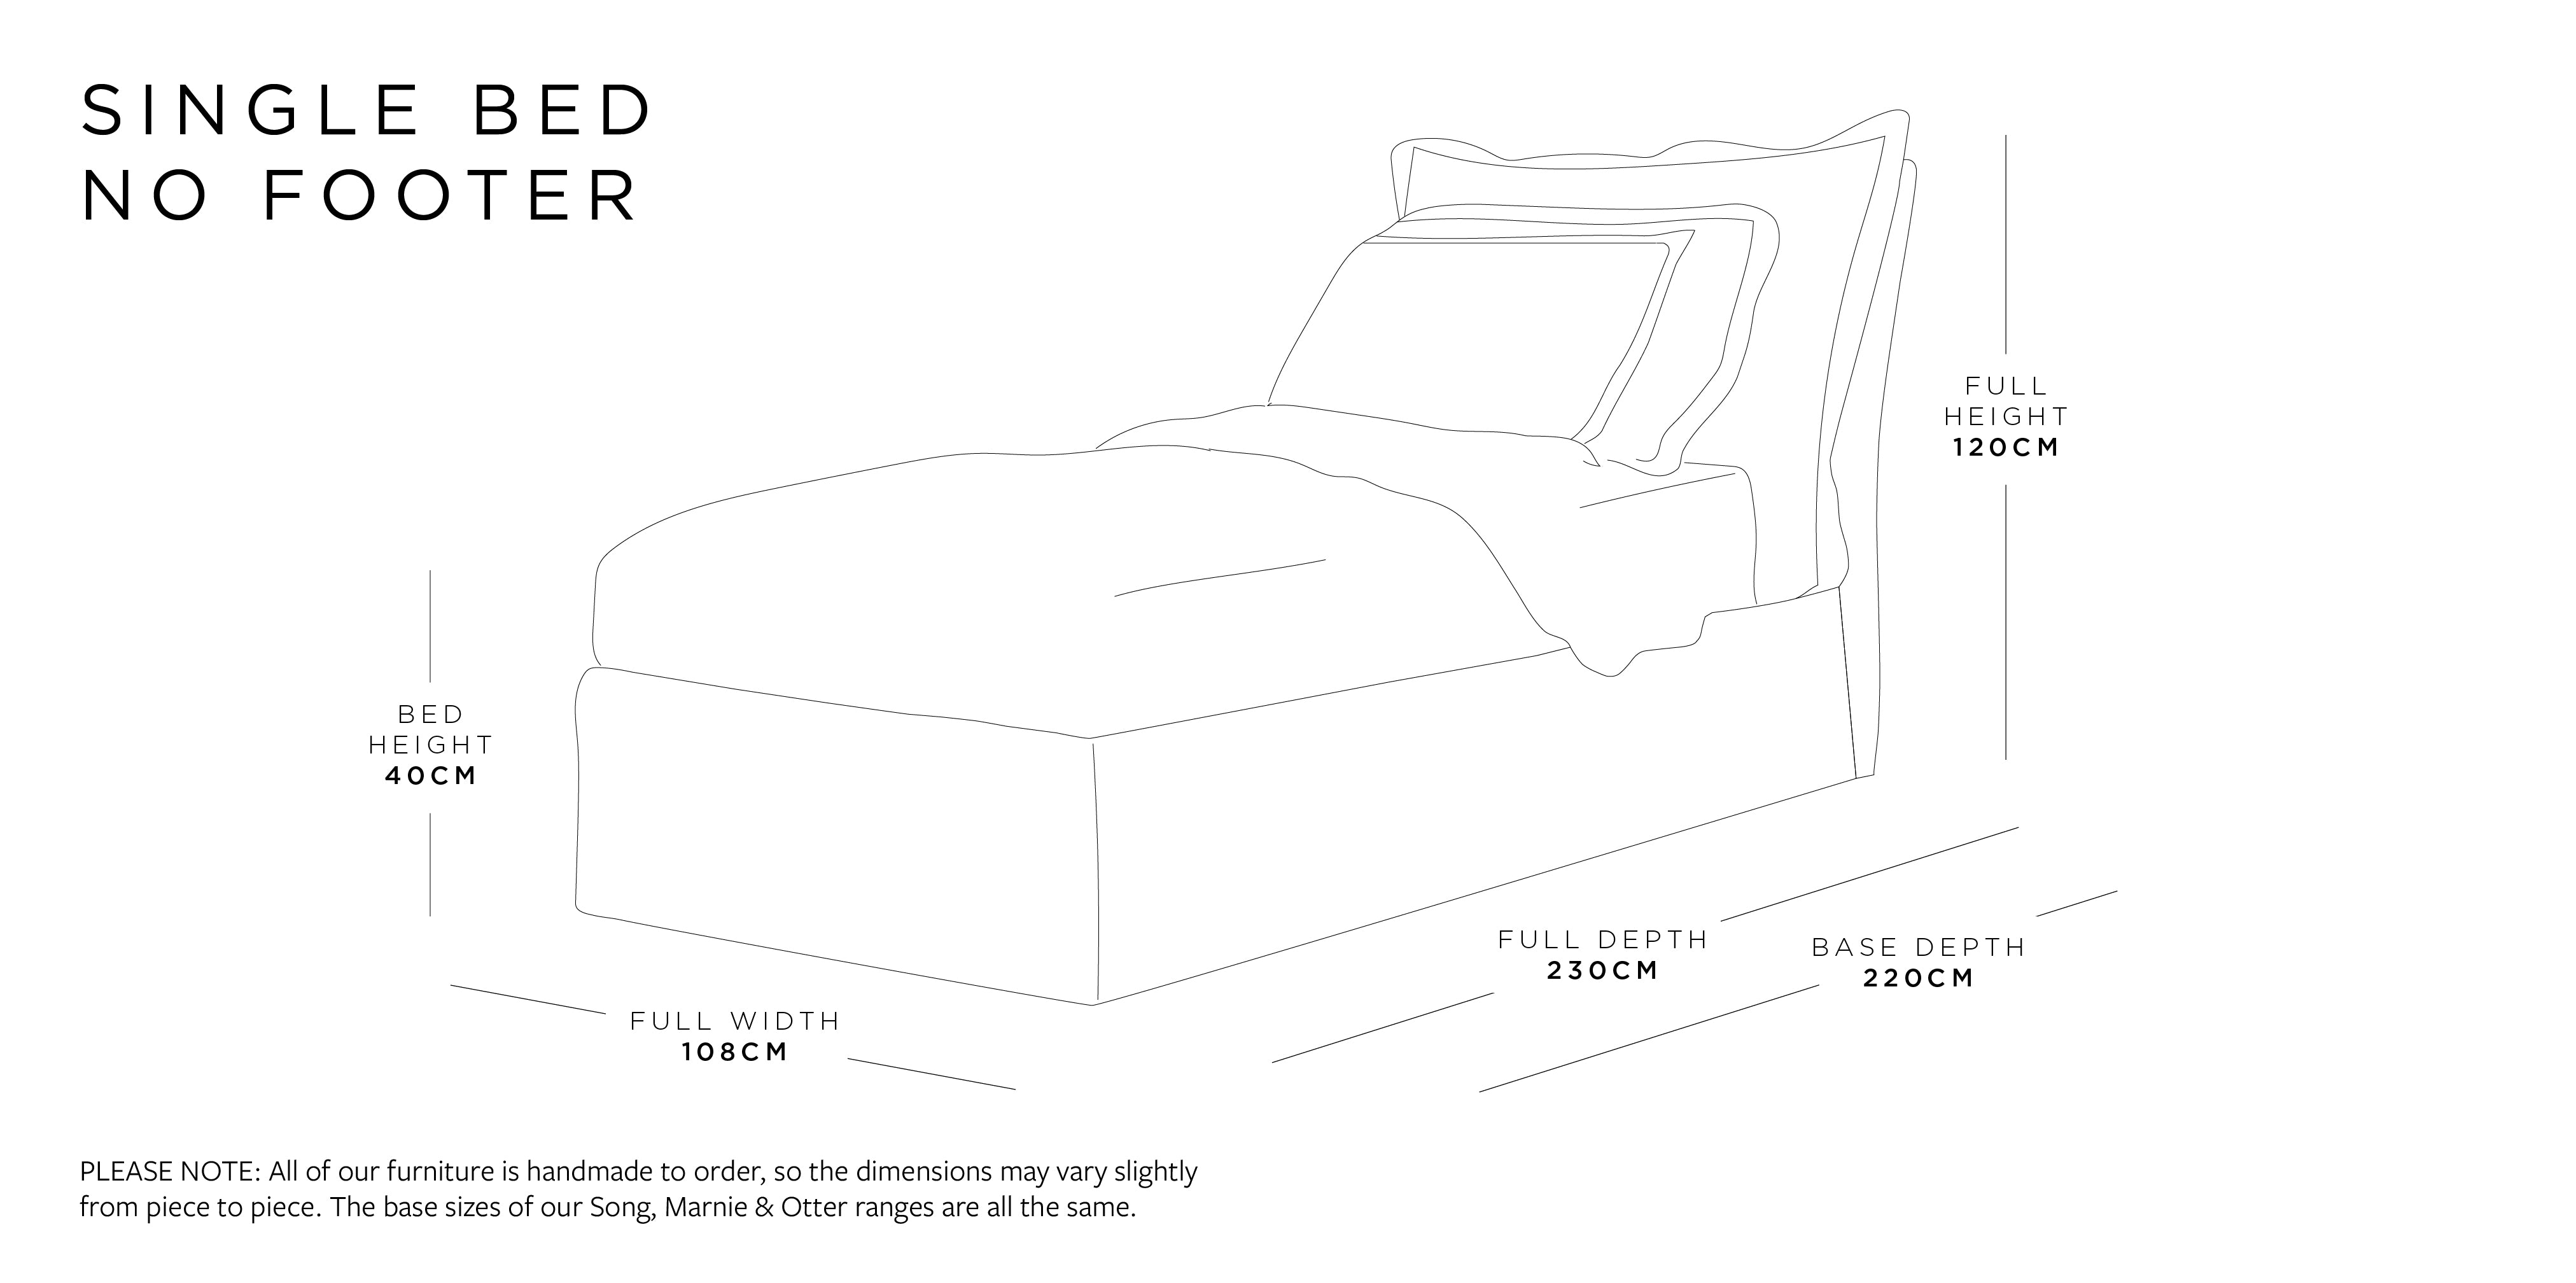 Single Bed Without Footer Dimensions